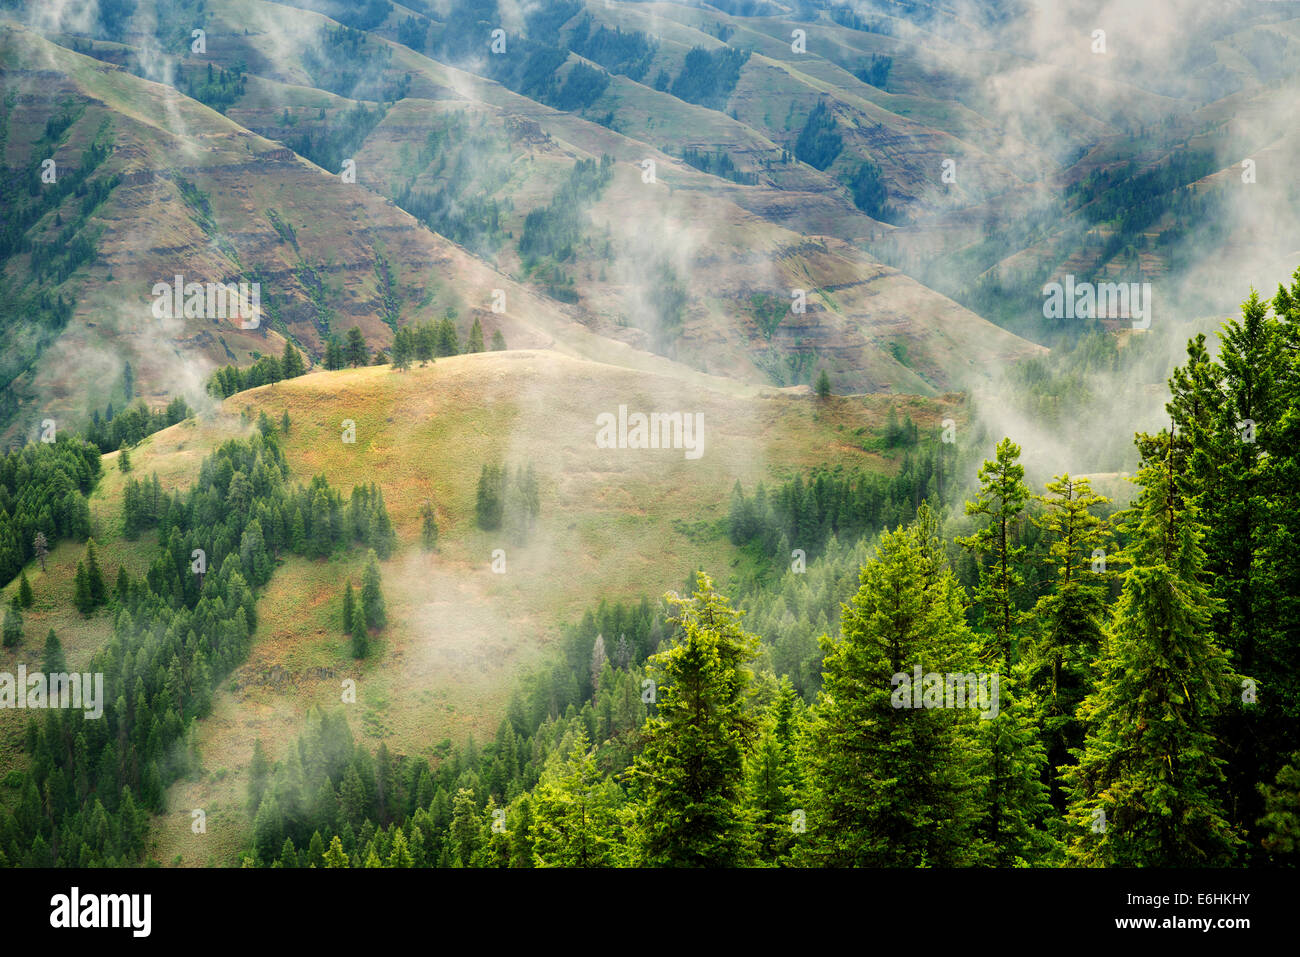 Joseph Canyon Overlook with clearing rain clouds, Oregon - Stock Image